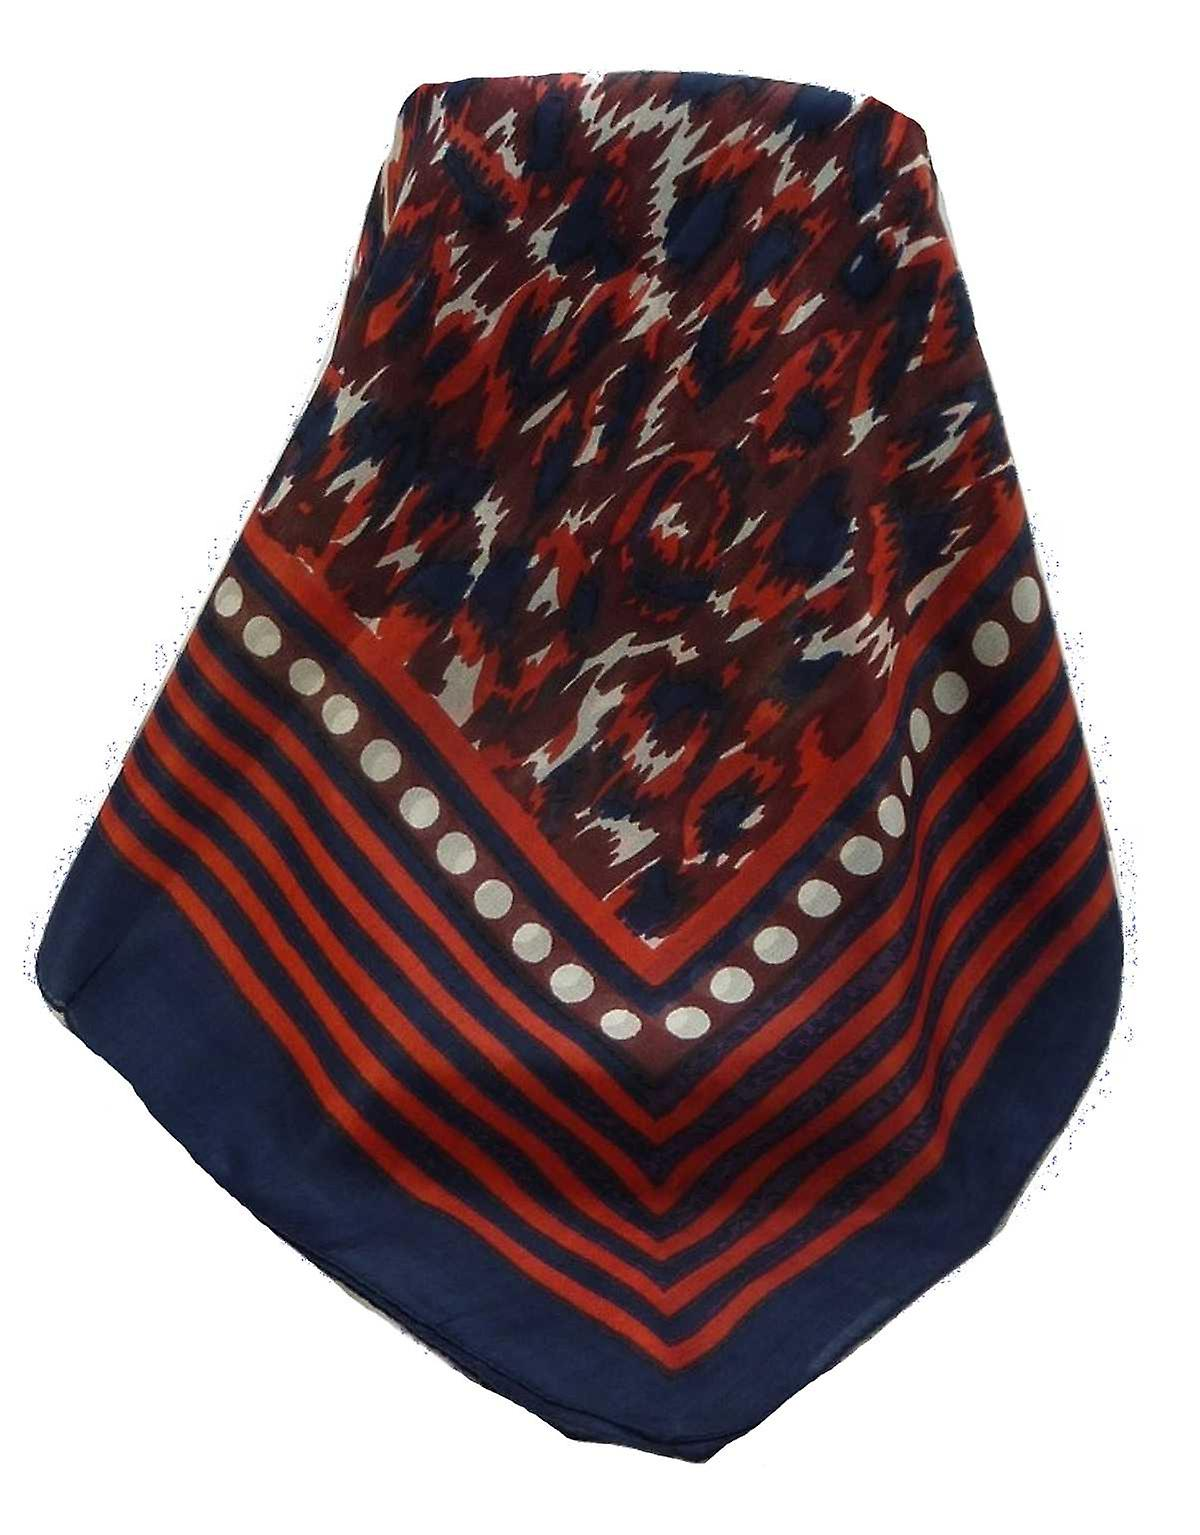 Mulberry Silk Contemporary Square Scarf Geometric G124 by Pashmina & Silk